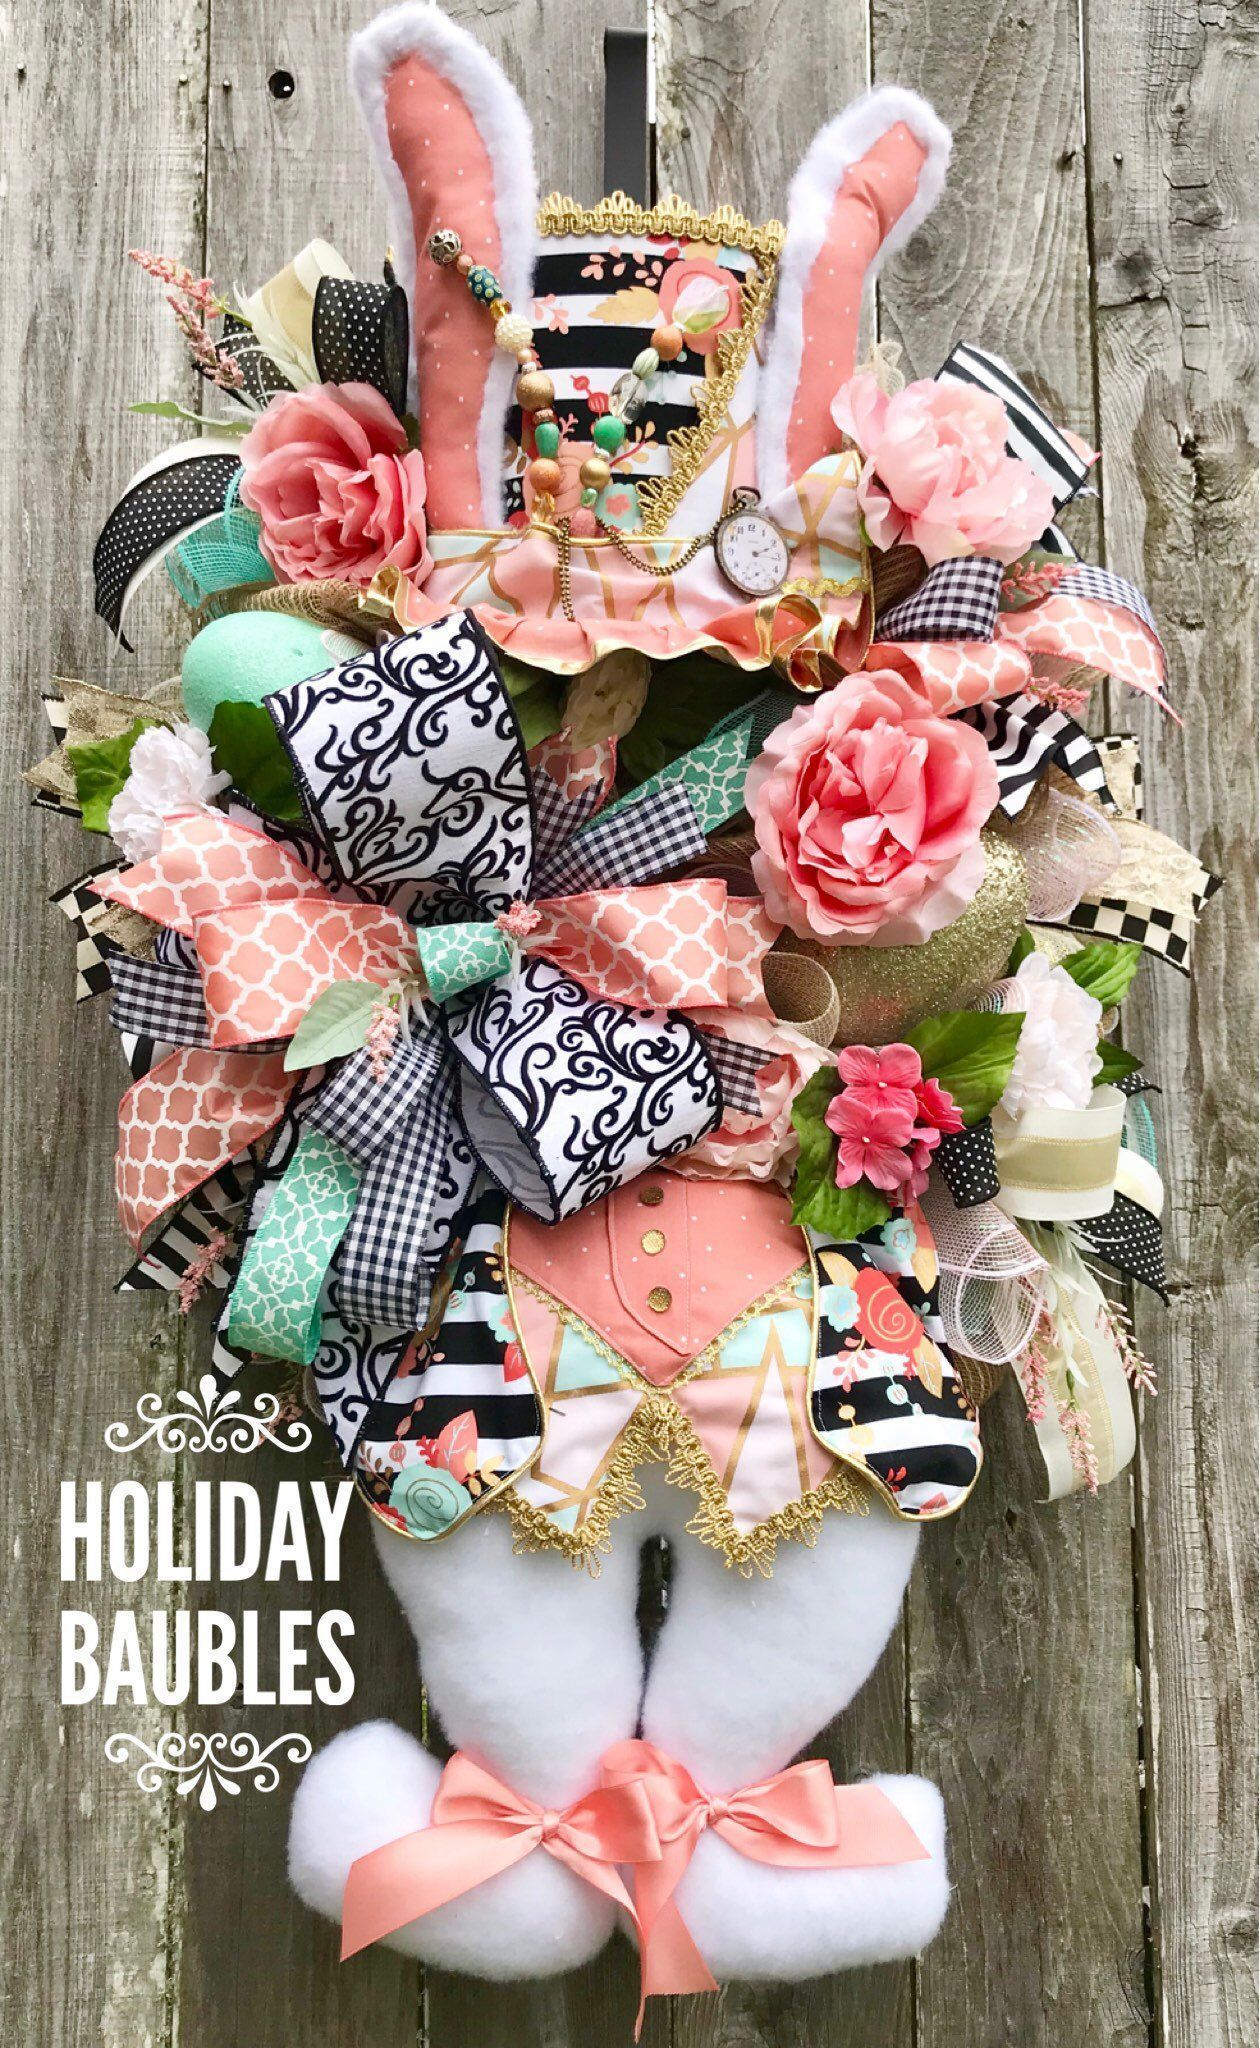 Easter Wreath, Mad Hatter Bunny Wreath, Easter Double Door Wreath, Bunny Wreath, Mad Hatter Wreath, Easter Shabby Chic Wreath, Easter Decor #doubledoorwreaths Excited to share this item from my #etsy shop: Easter Wreath, Mad Hatter Bunny Wreath, Easter Double Door Wreath, Bunny Wreath, Mad Hatter Wreath, Easter Shabby Chic Wreath, Easter Decor #doubledoorwreaths Easter Wreath, Mad Hatter Bunny Wreath, Easter Double Door Wreath, Bunny Wreath, Mad Hatter Wreath, Easter Shabby Chic Wreath, Easter D #doubledoorwreaths